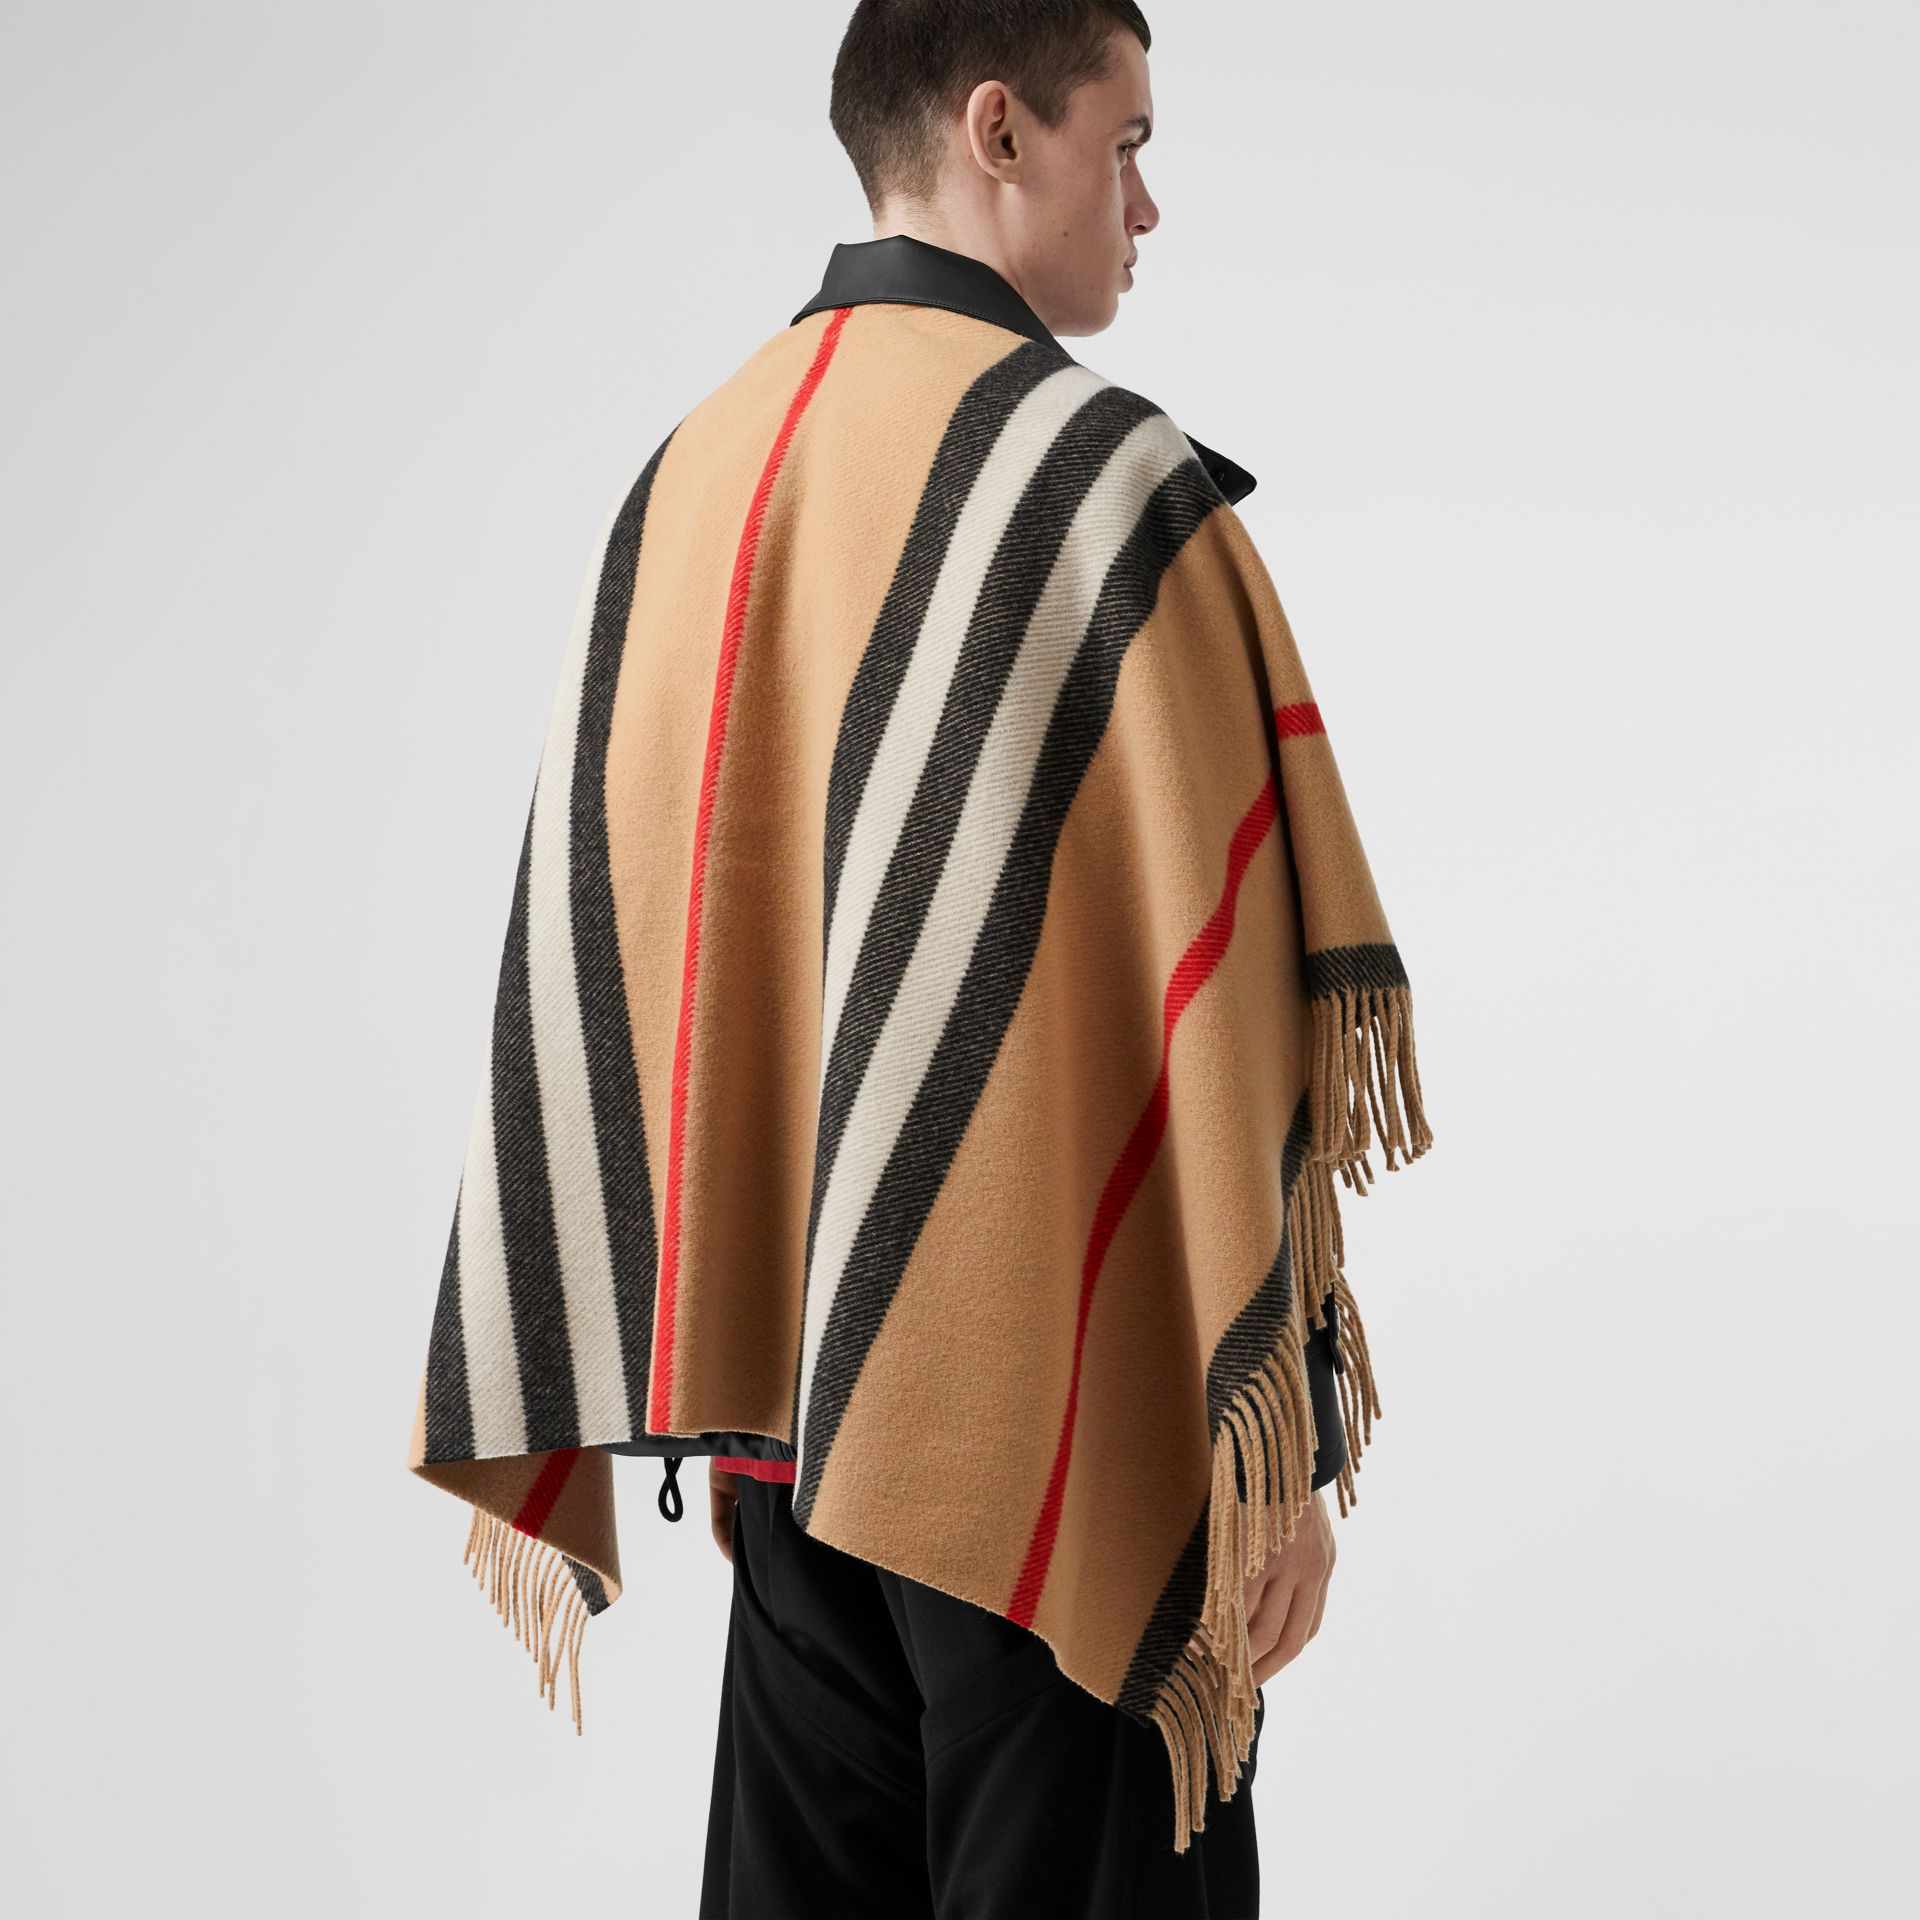 Striped Wool Cape in Camel - Women | Burberry United Kingdom - gallery image 8